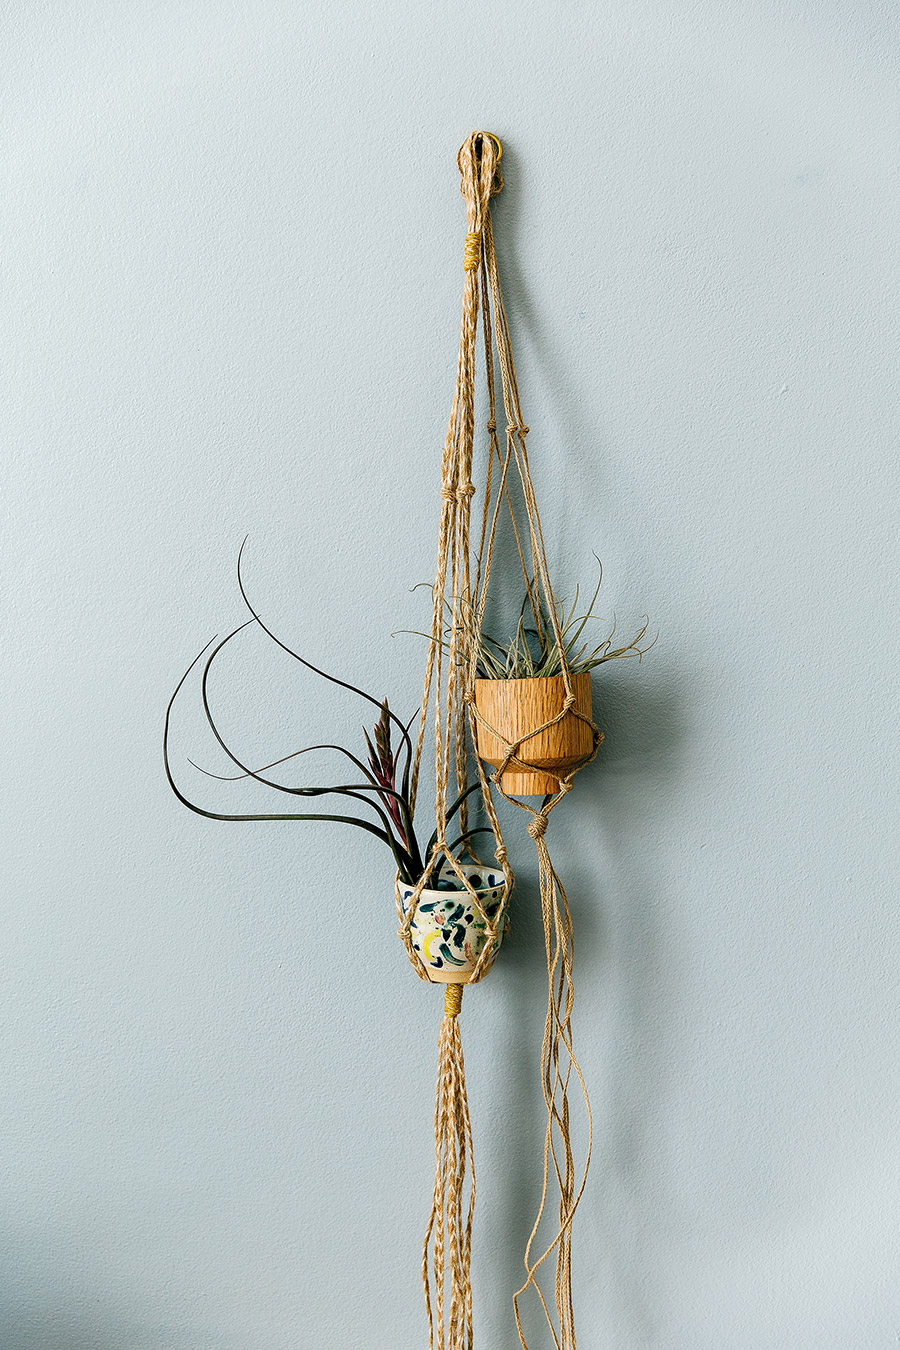 House of plants - Macrame plant hanger